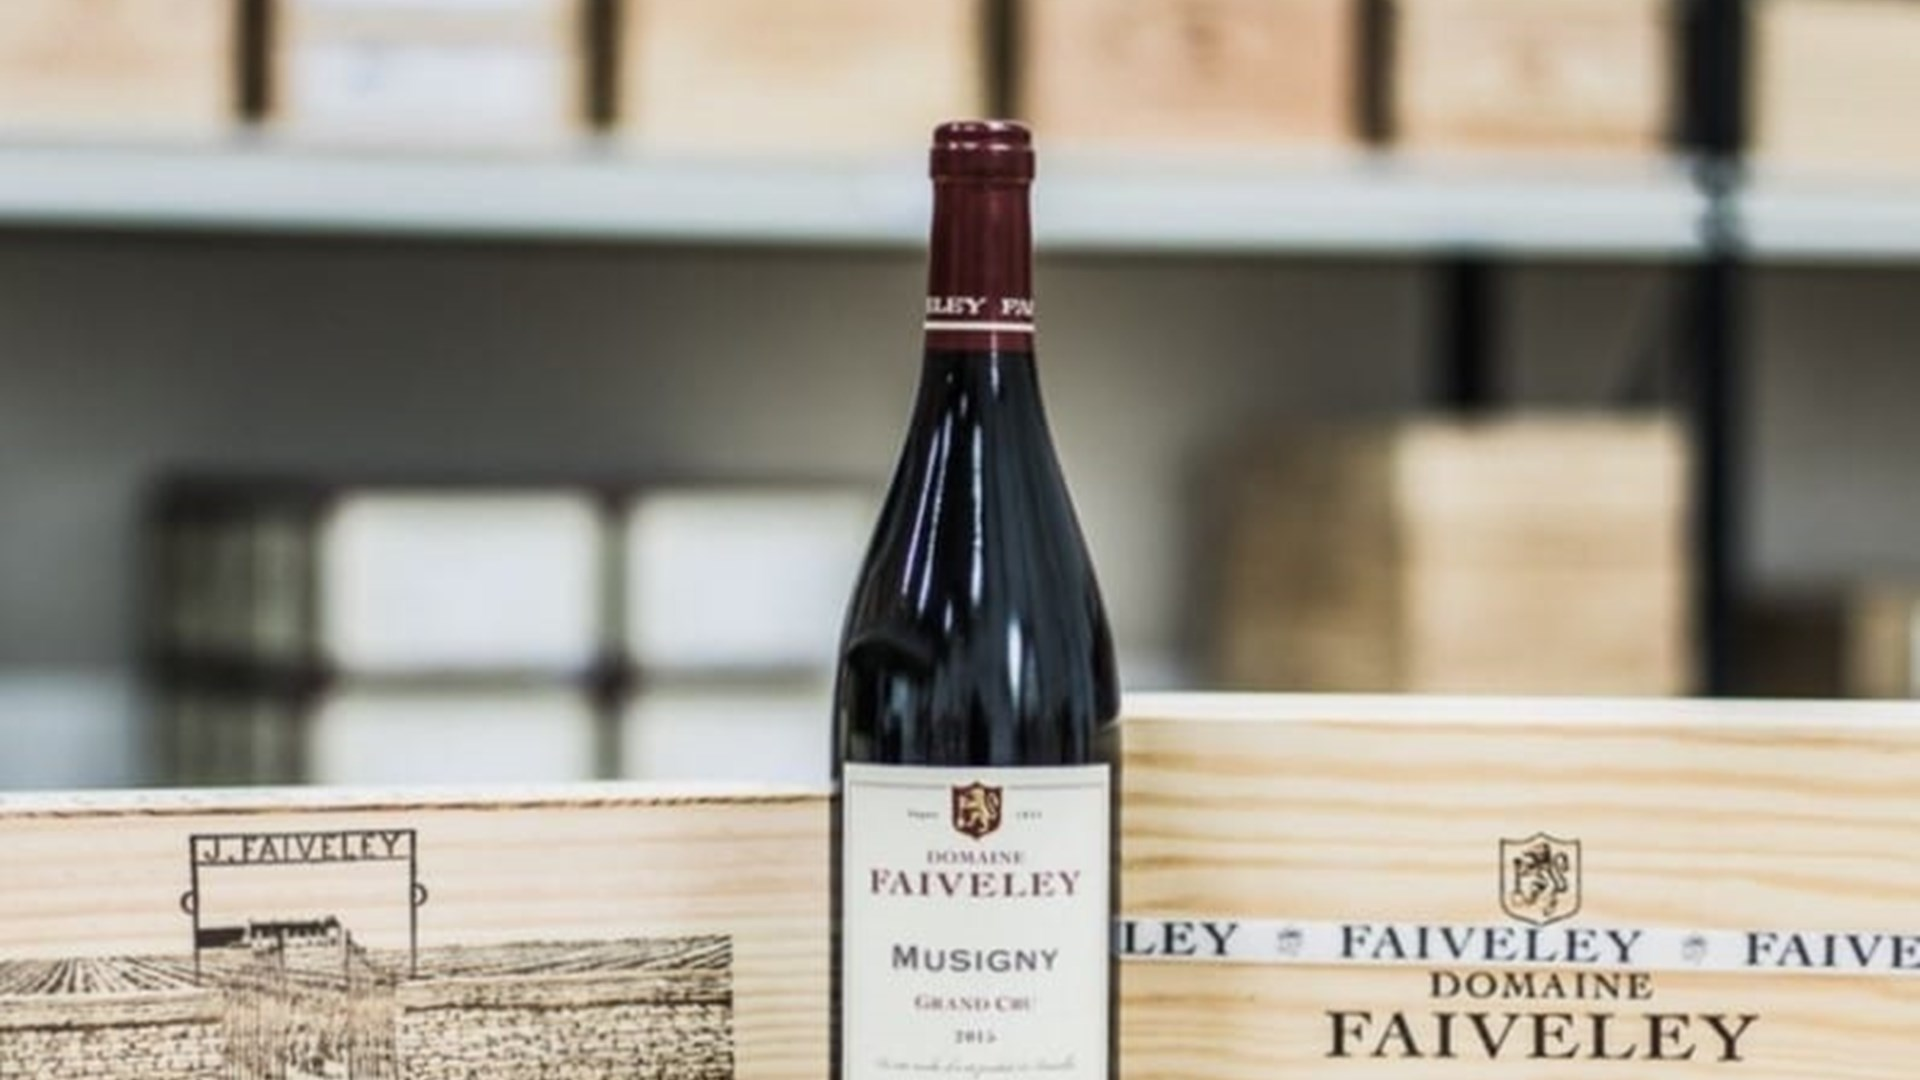 2015 Faiveley Musigny